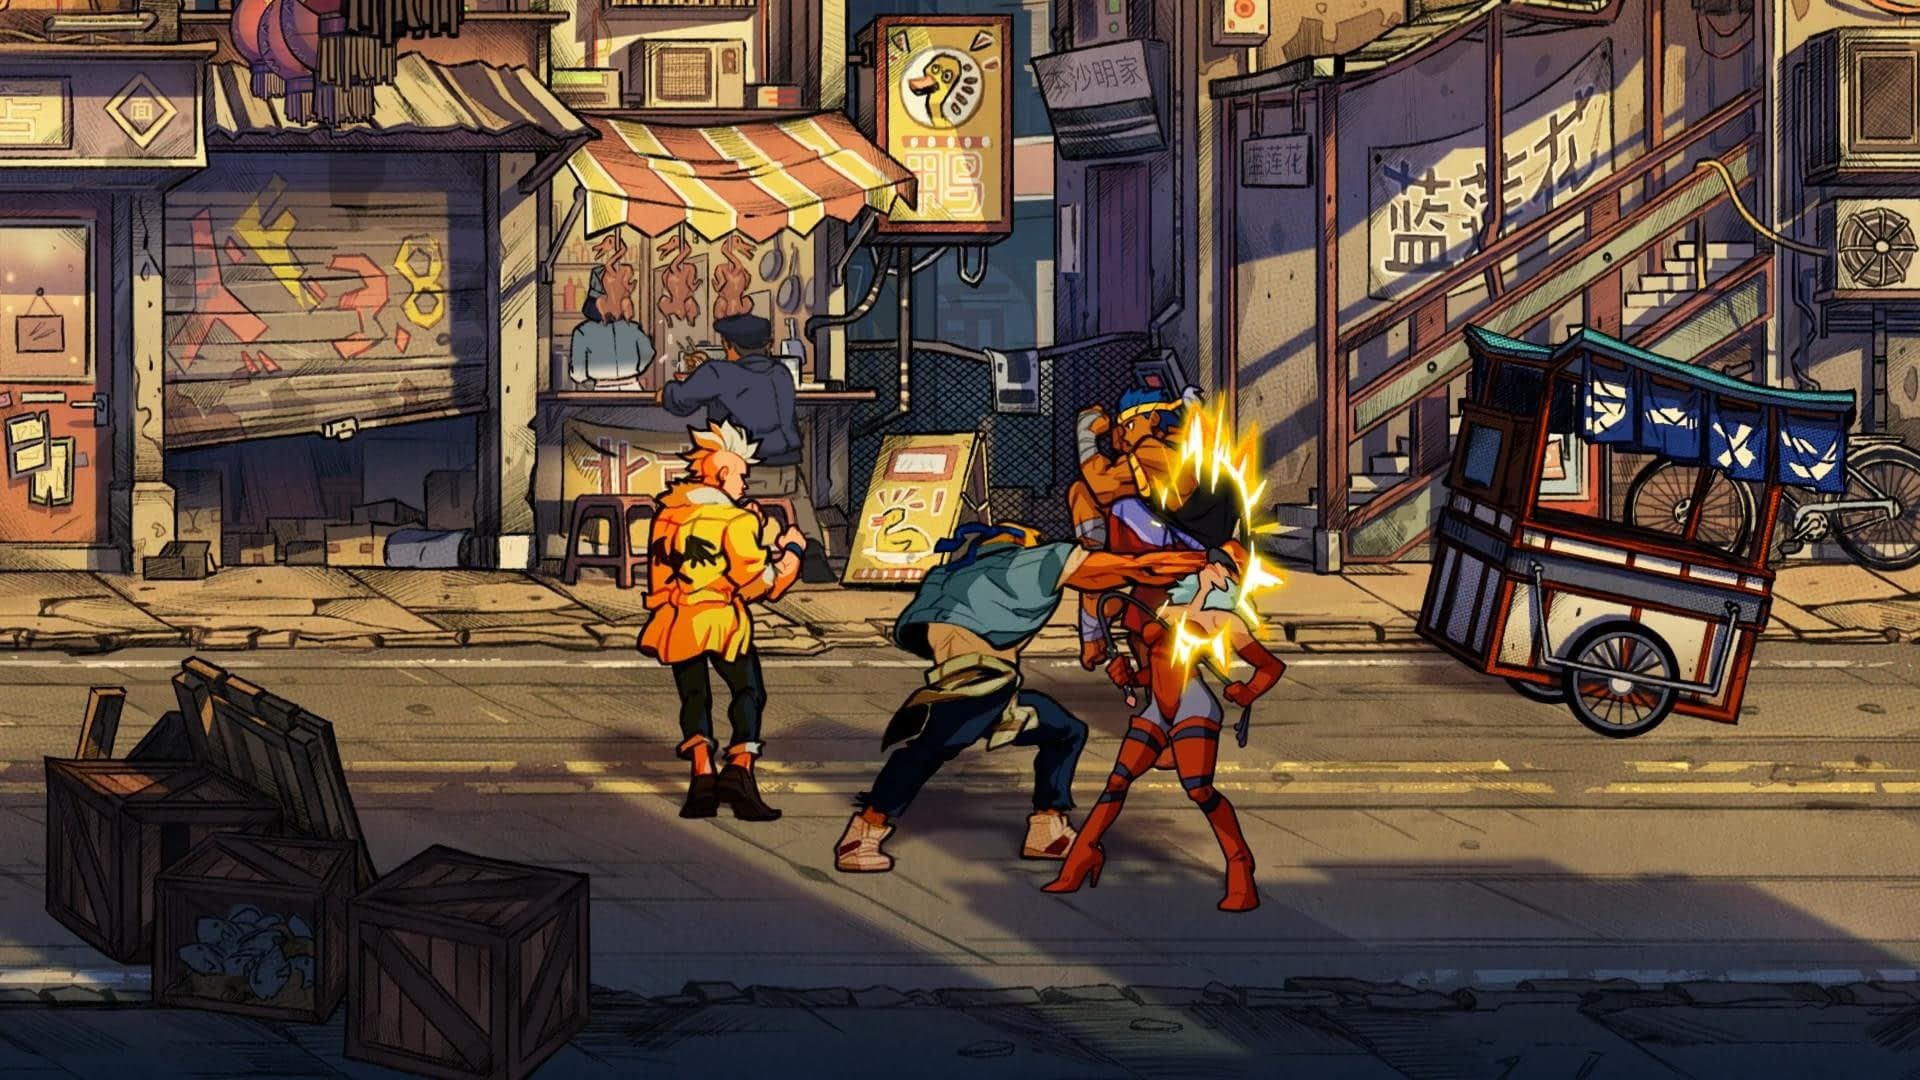 New Games on Steam: Streets of Rage 4